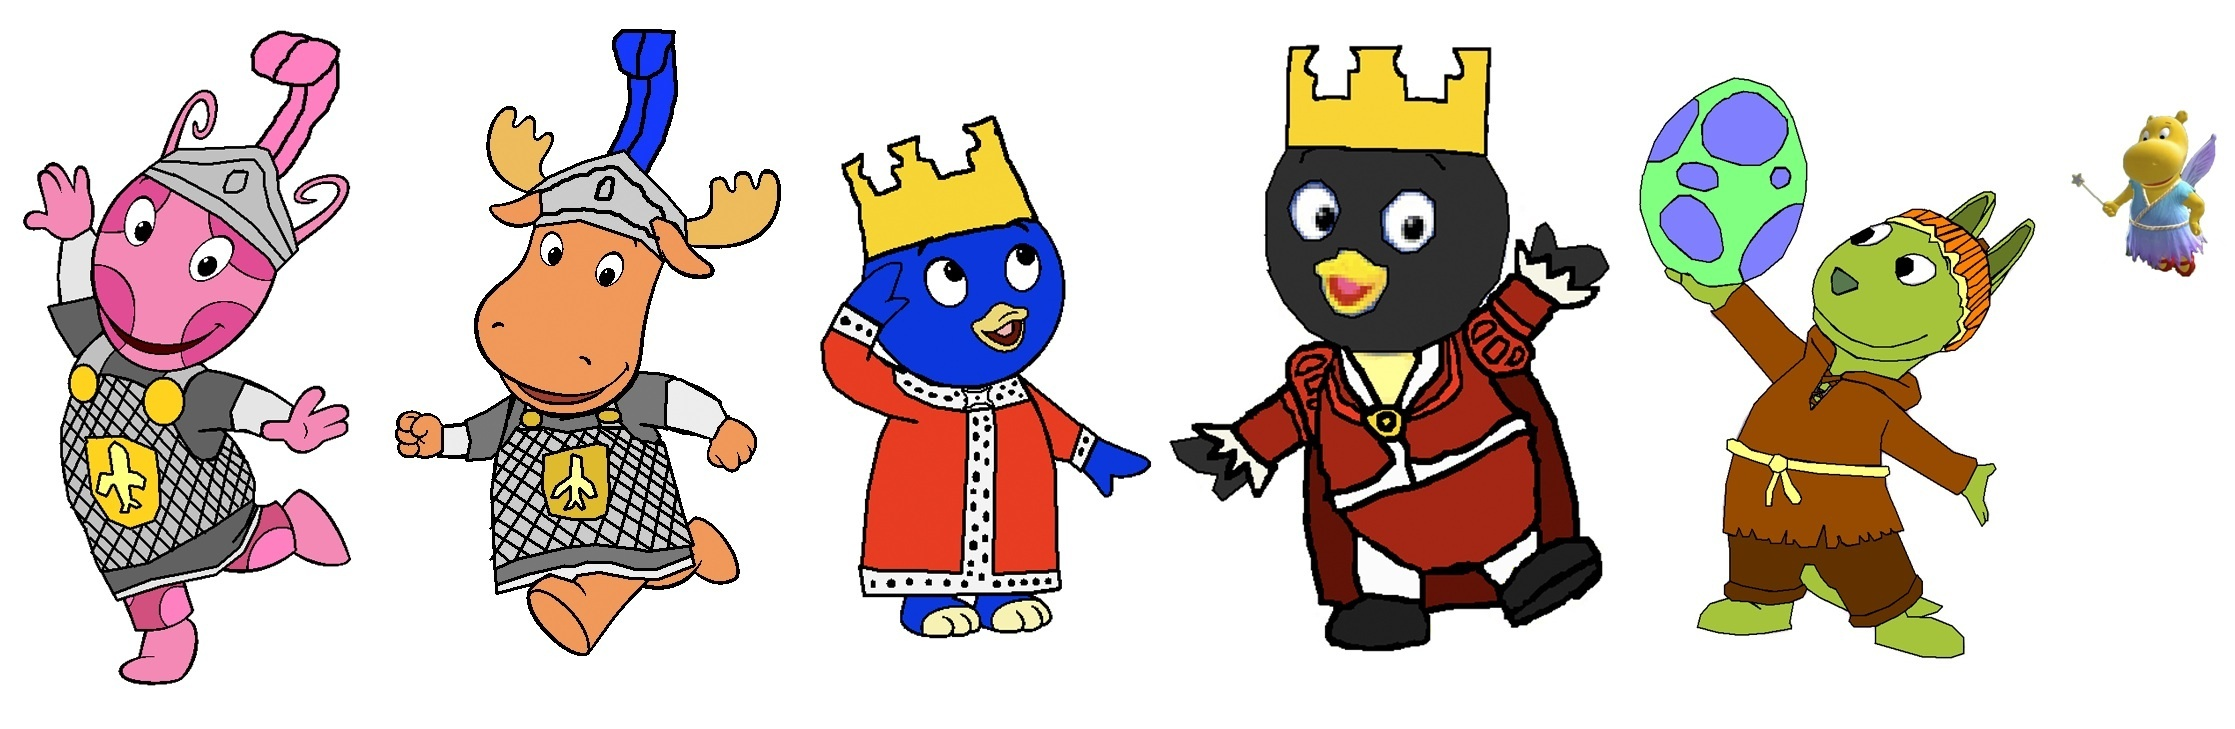 the backyardigans images tale of the mighty knights group hd